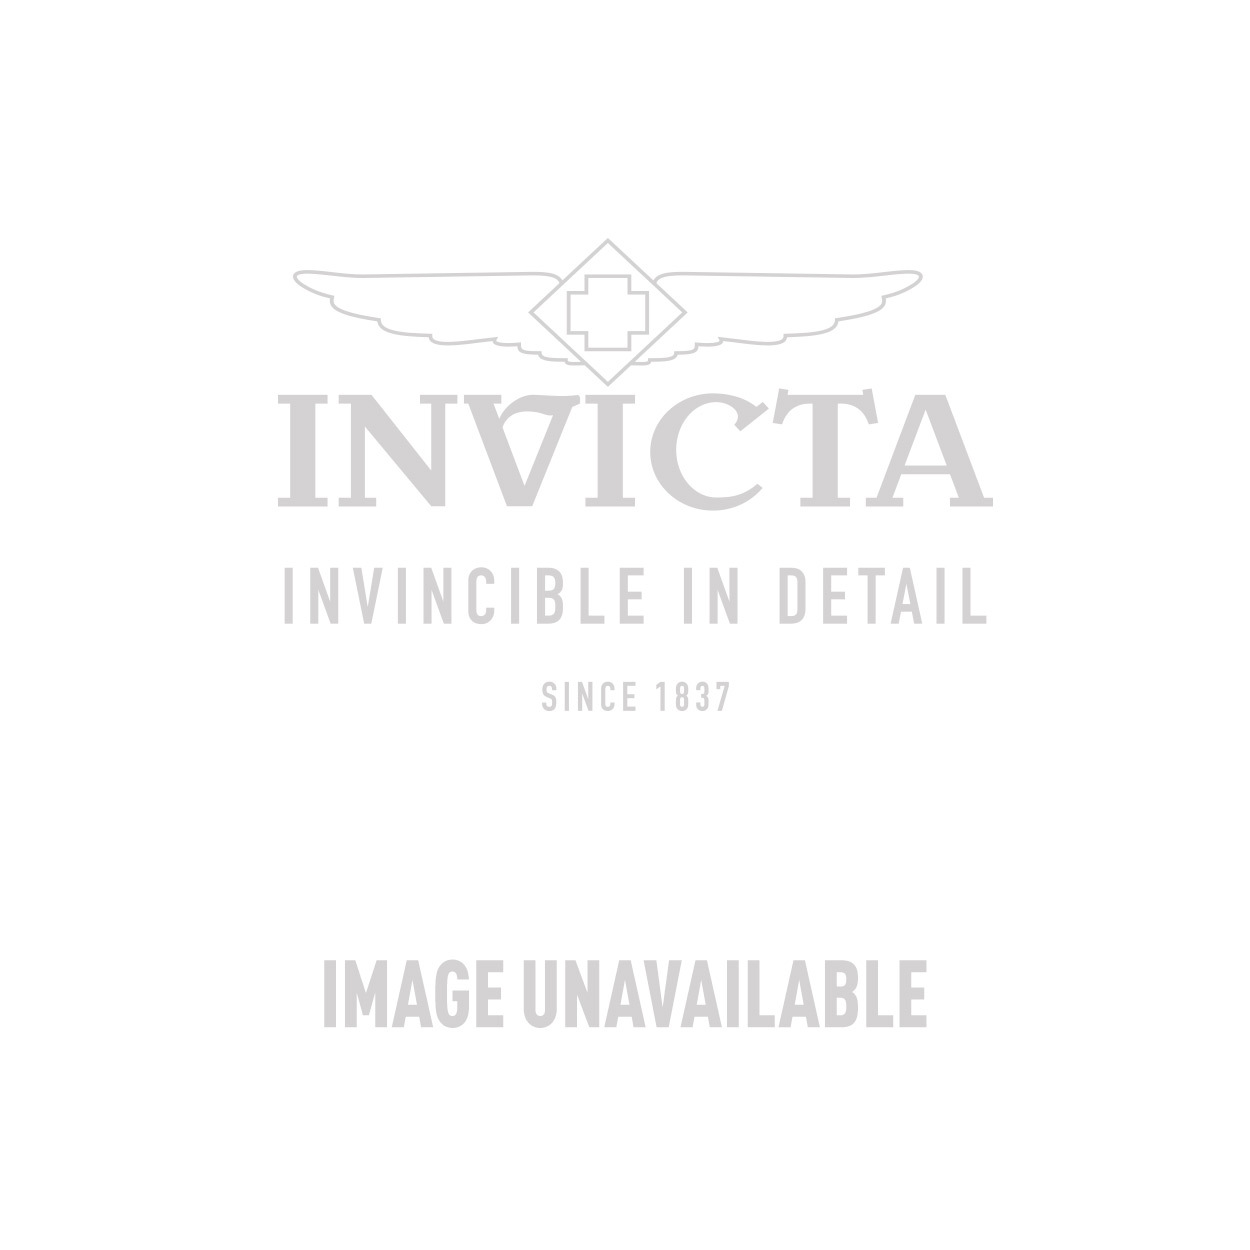 Invicta Coalition Forces Swiss Made Quartz Watch - Black case with Black tone Stainless Steel band - Model 11678